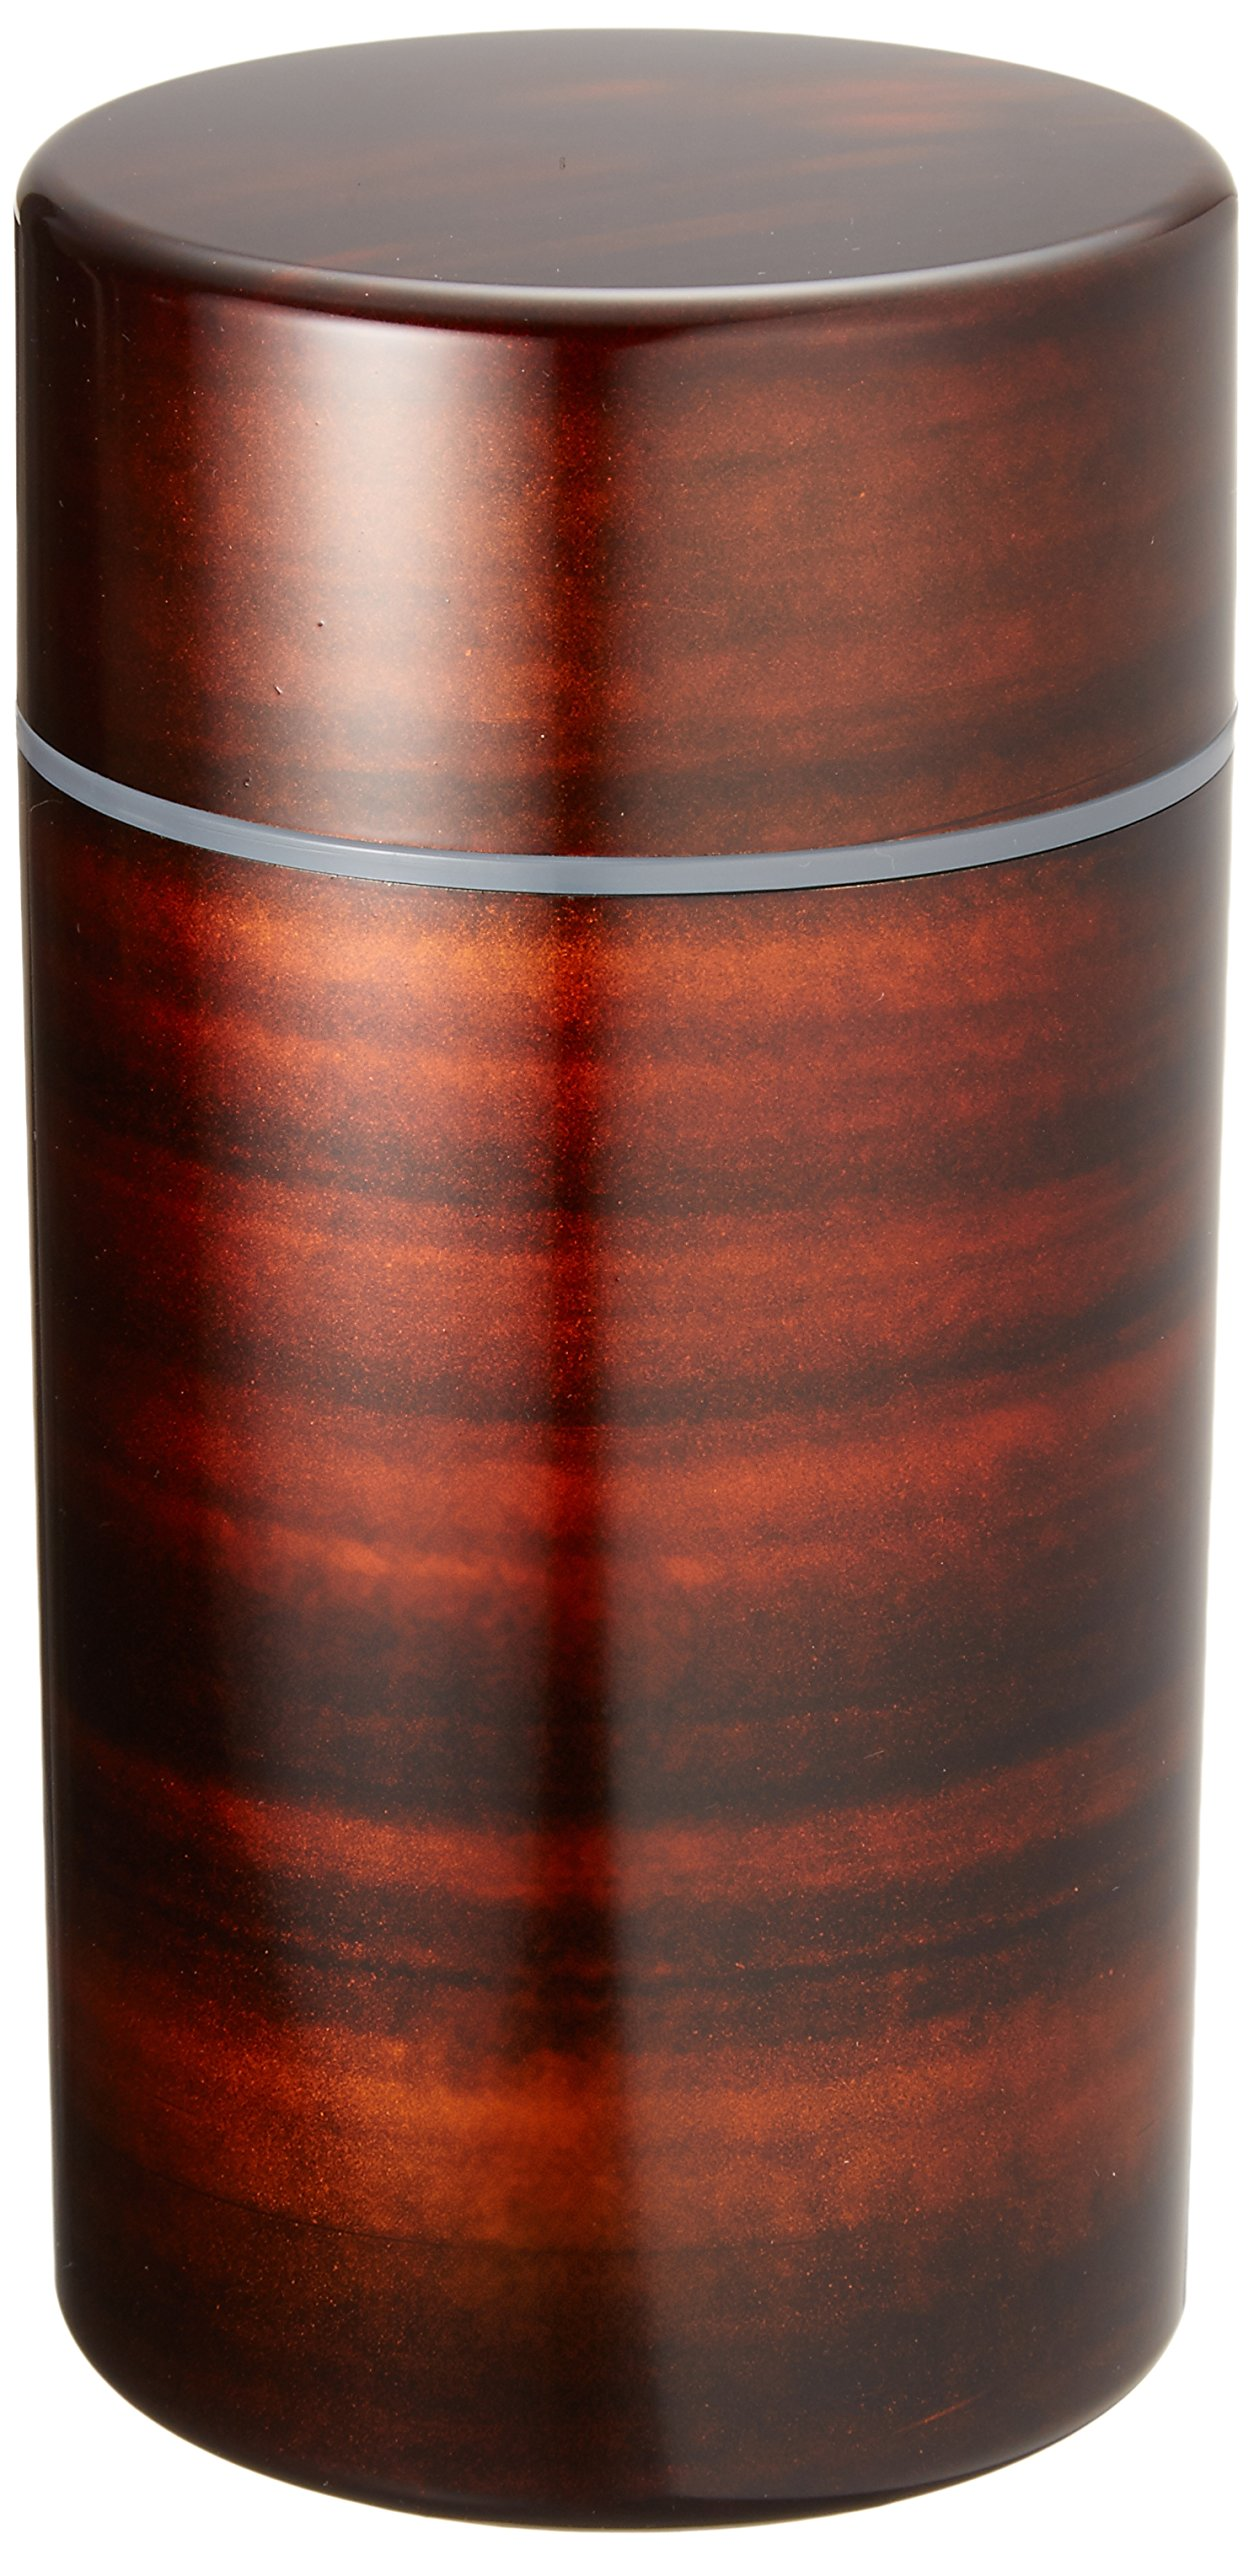 HAKOYA tea caddy Marudai cherry wood 56701 (japan import)